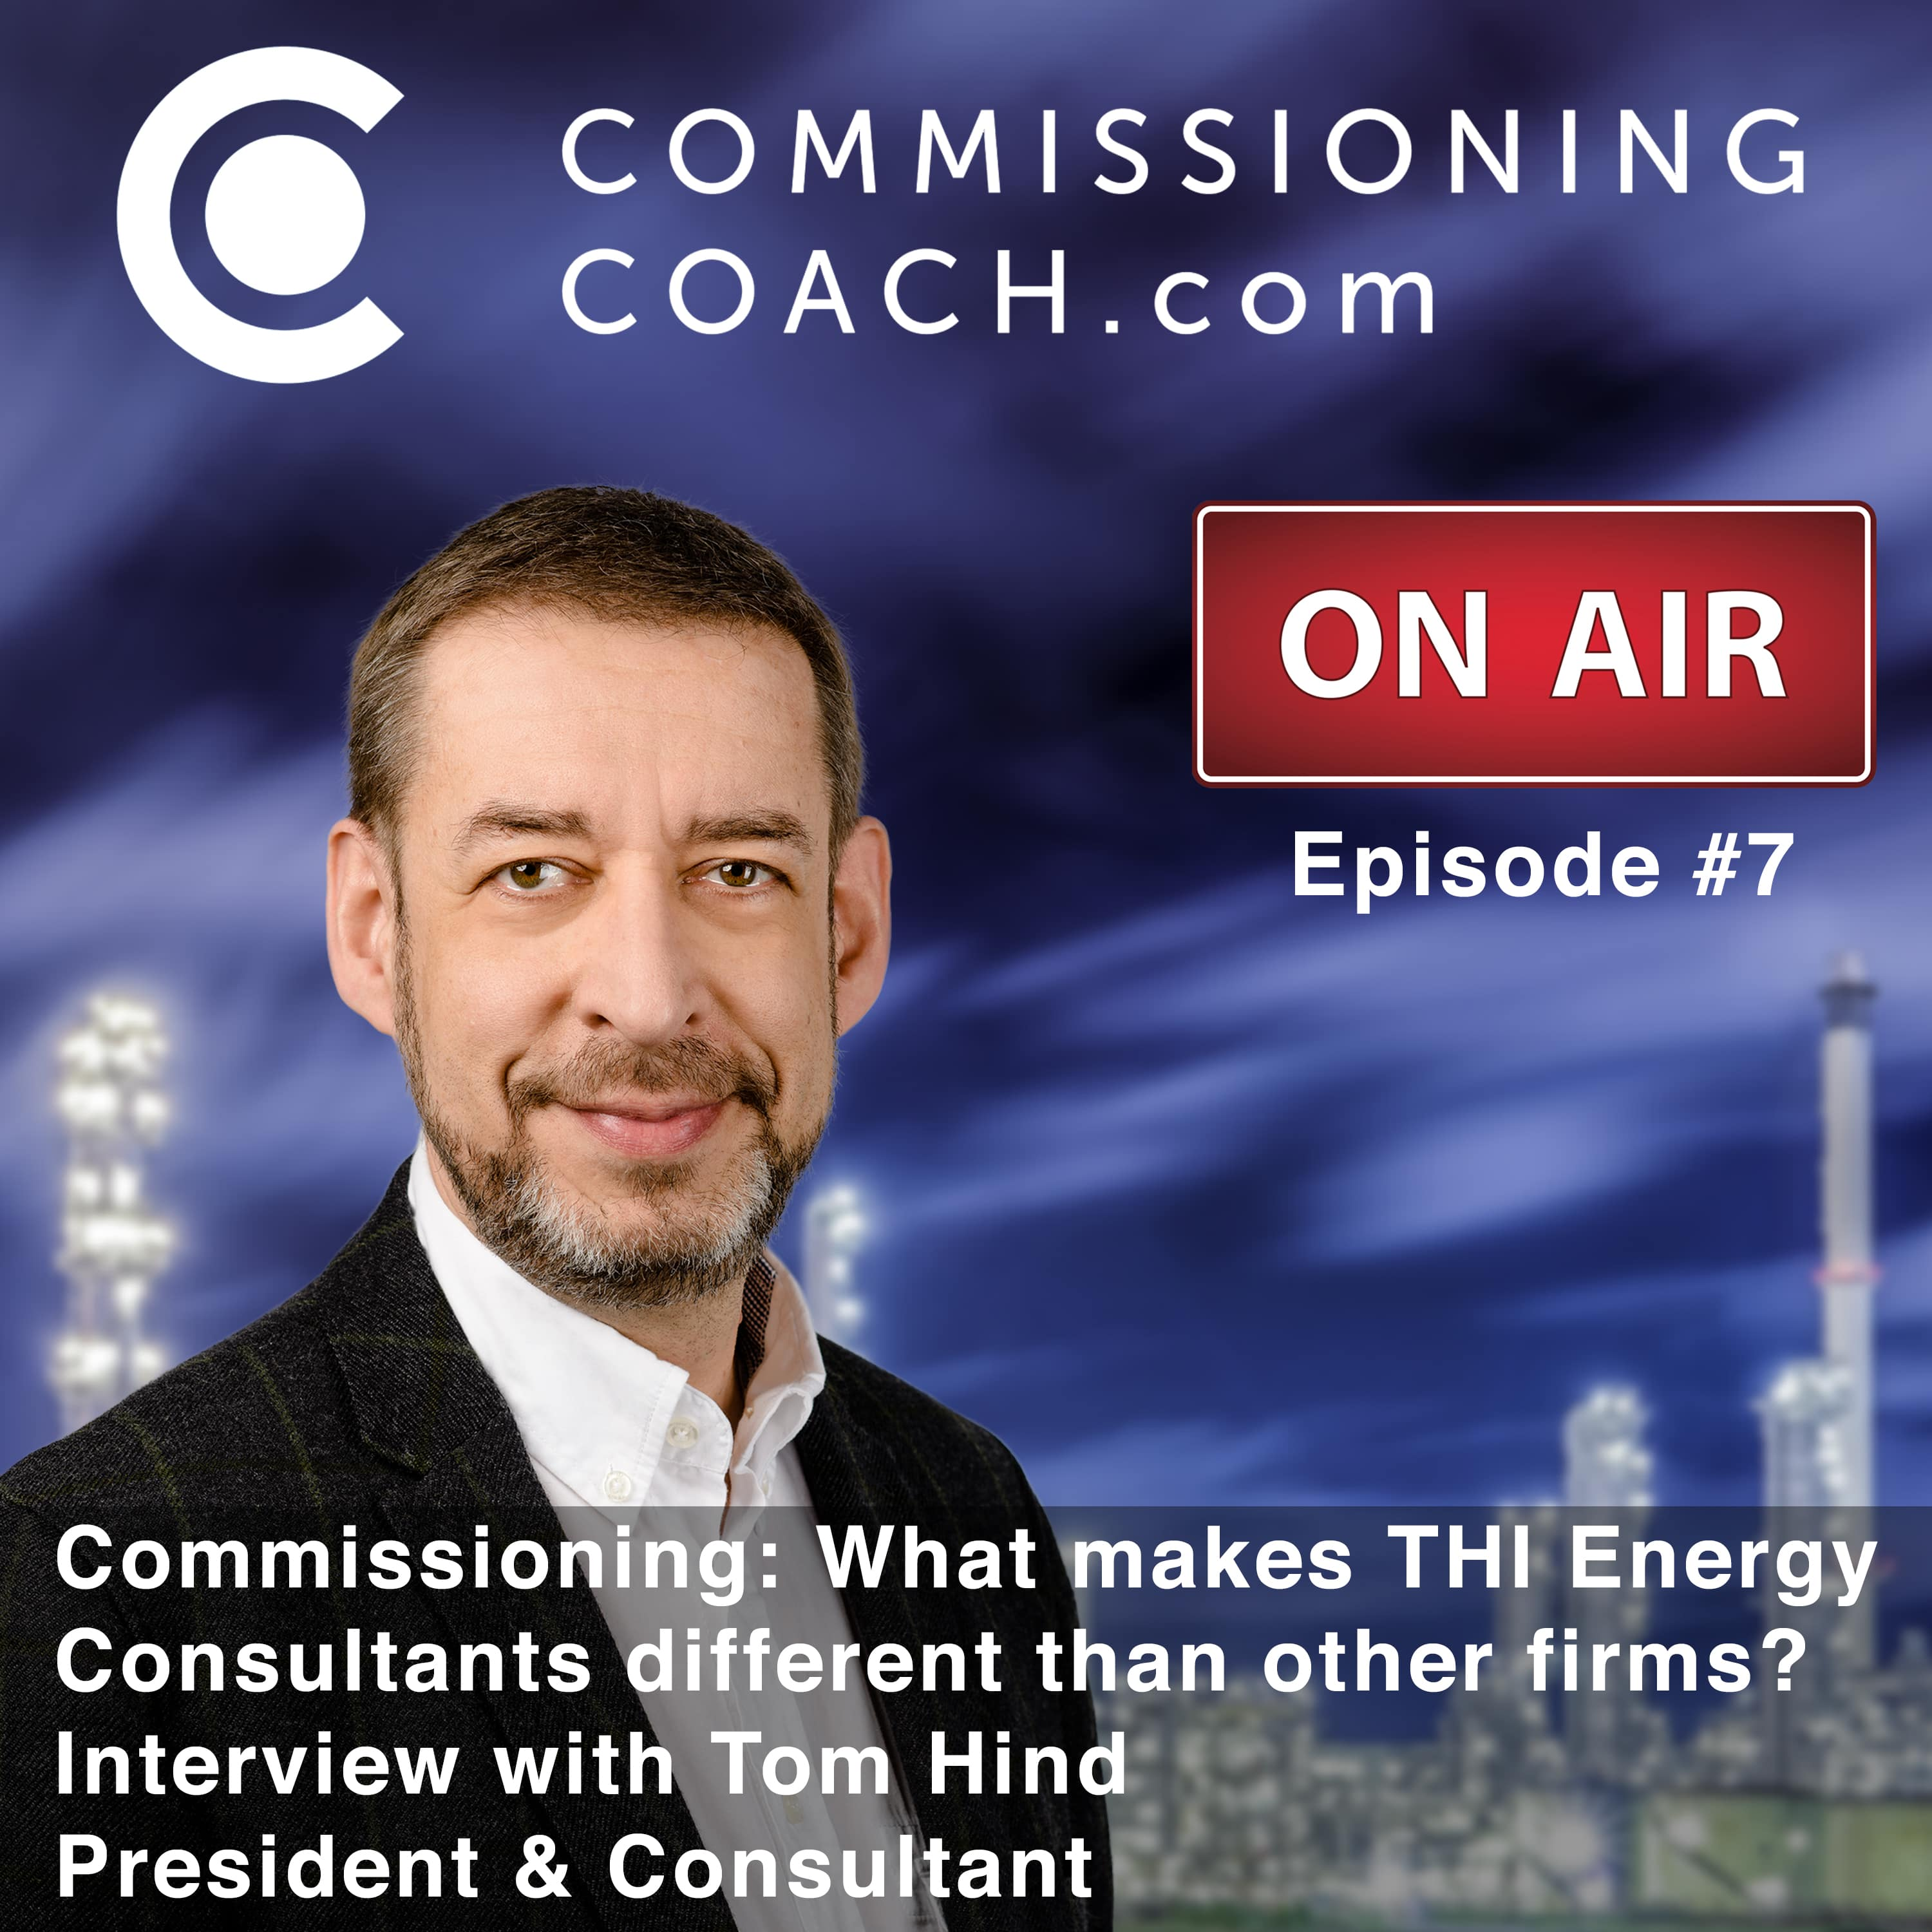 #7 - Commissioning: What makes THI Energy Consultants different than other firms? - Interview with Tom Hind